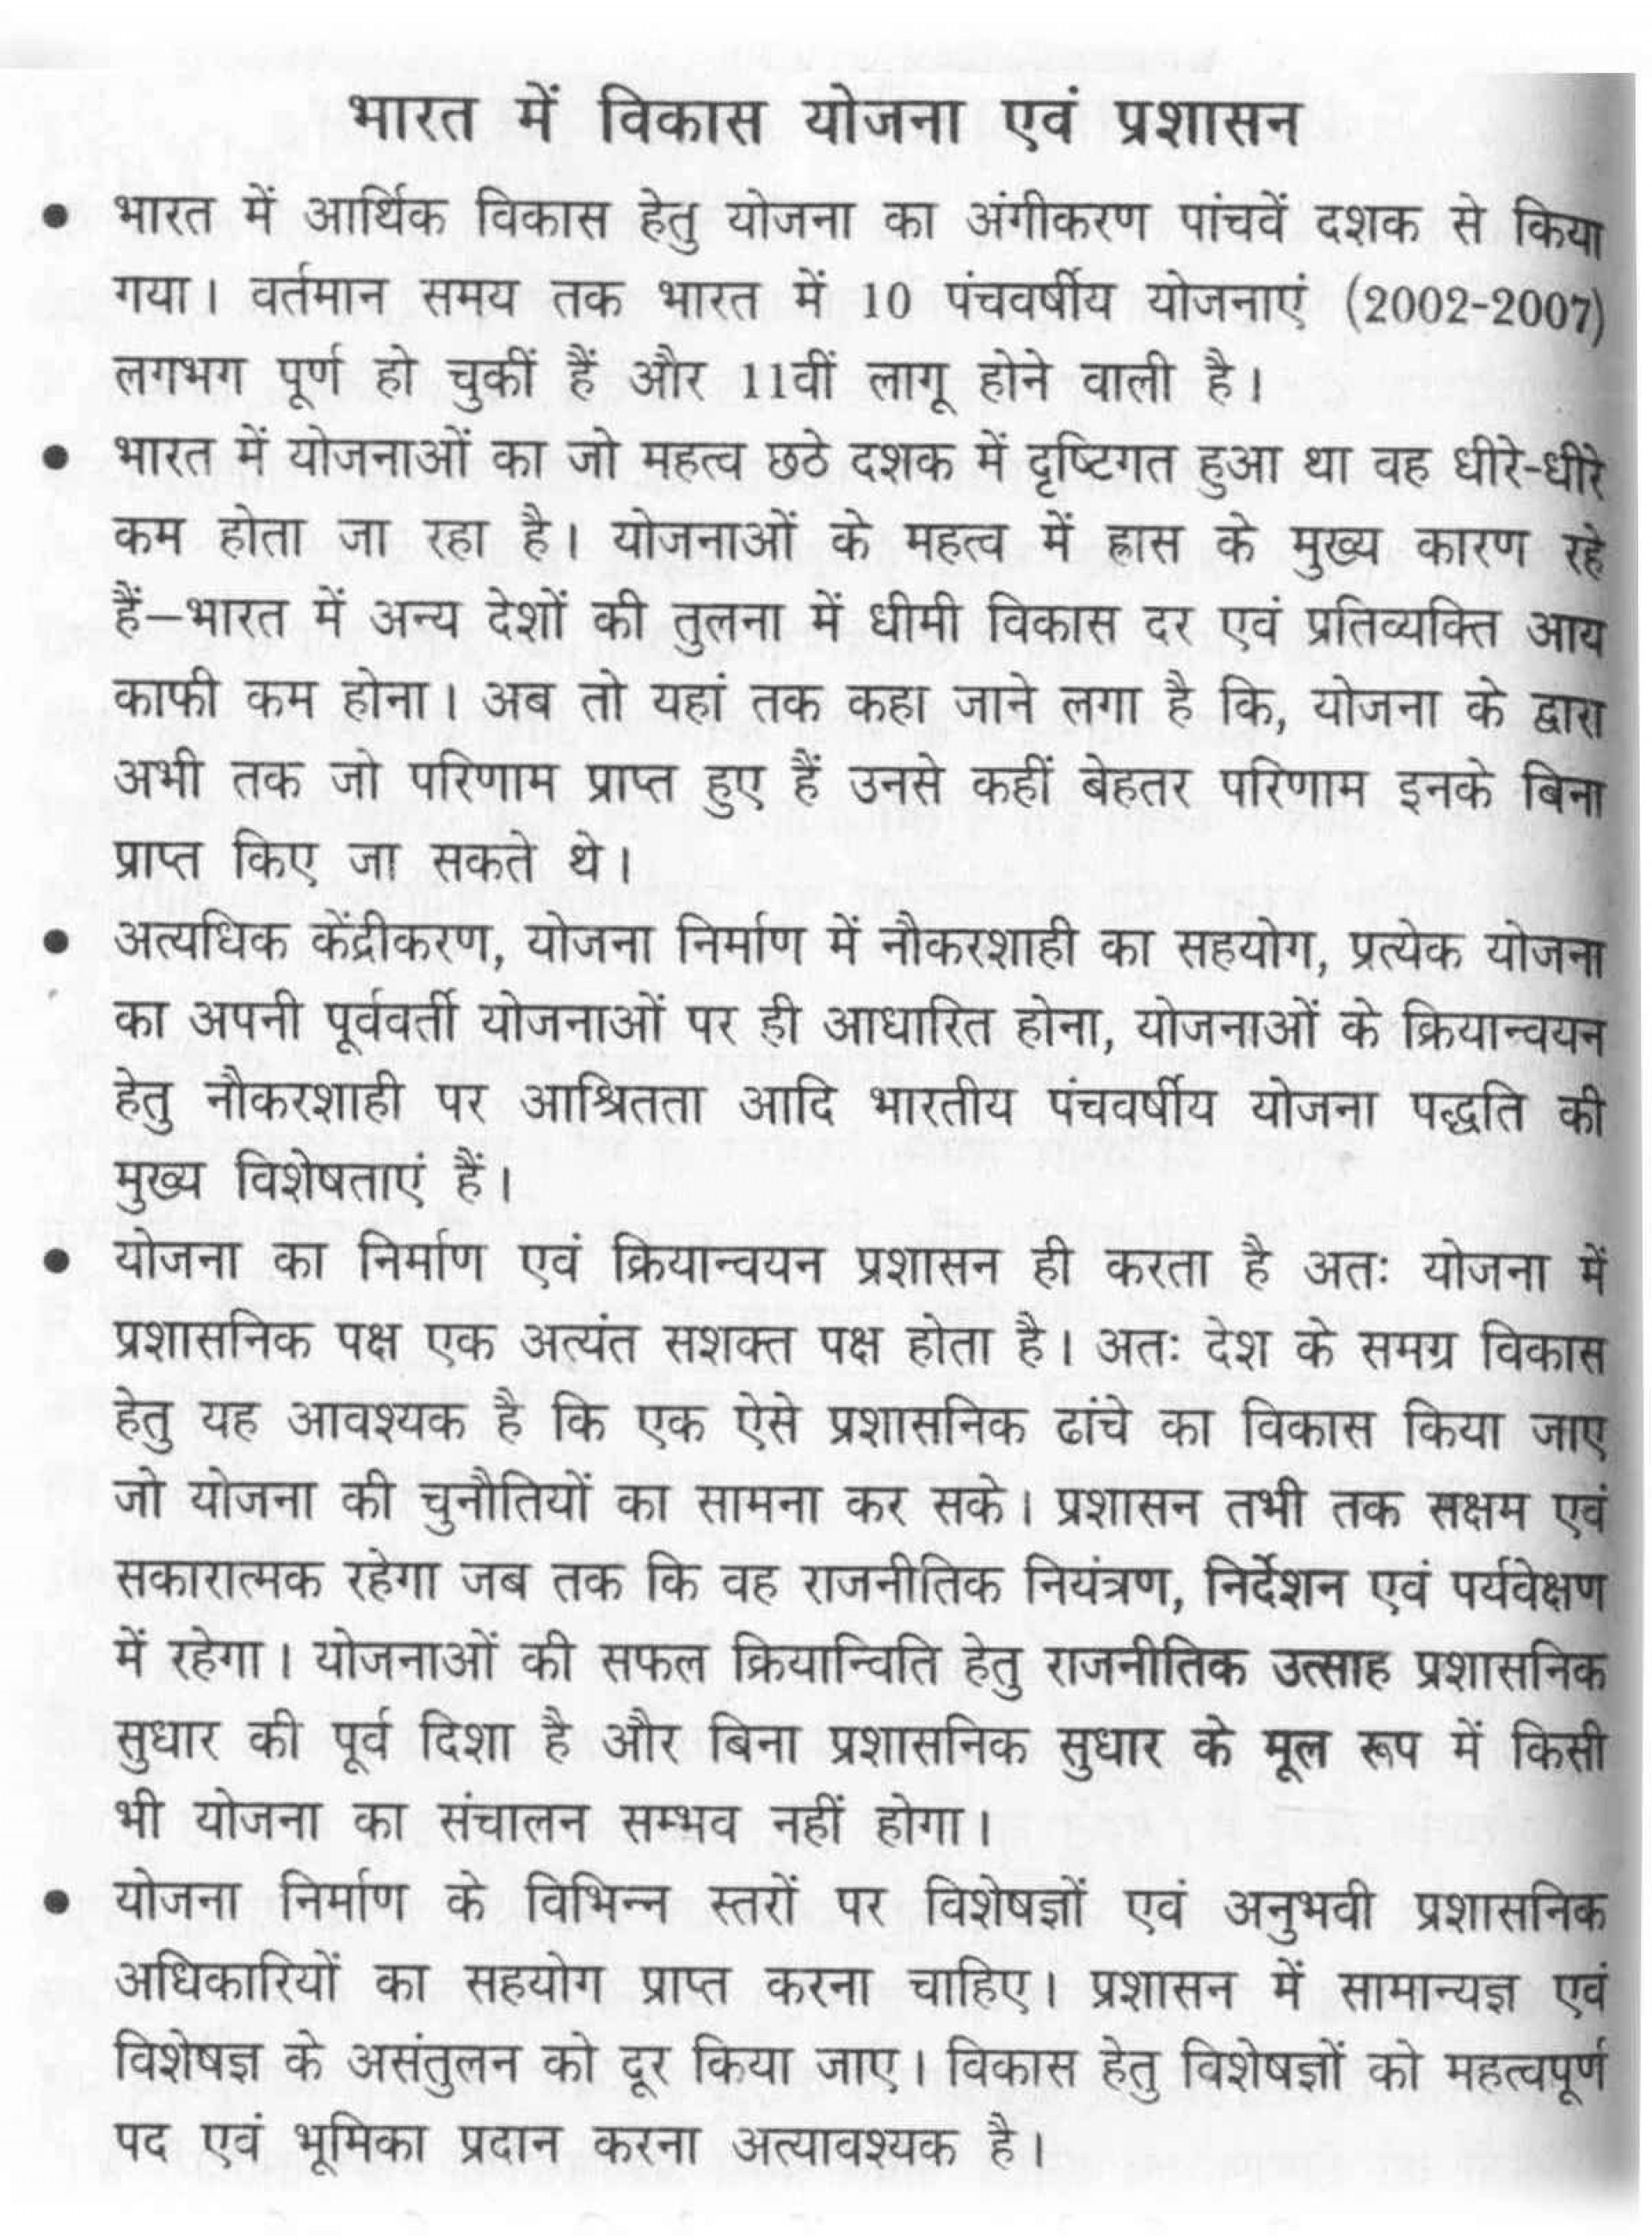 009 My Country Essay In Hindi Example Best Ideas Of Good Manner Easy Say No To Phenomenal 10 Lines Is Great 1920